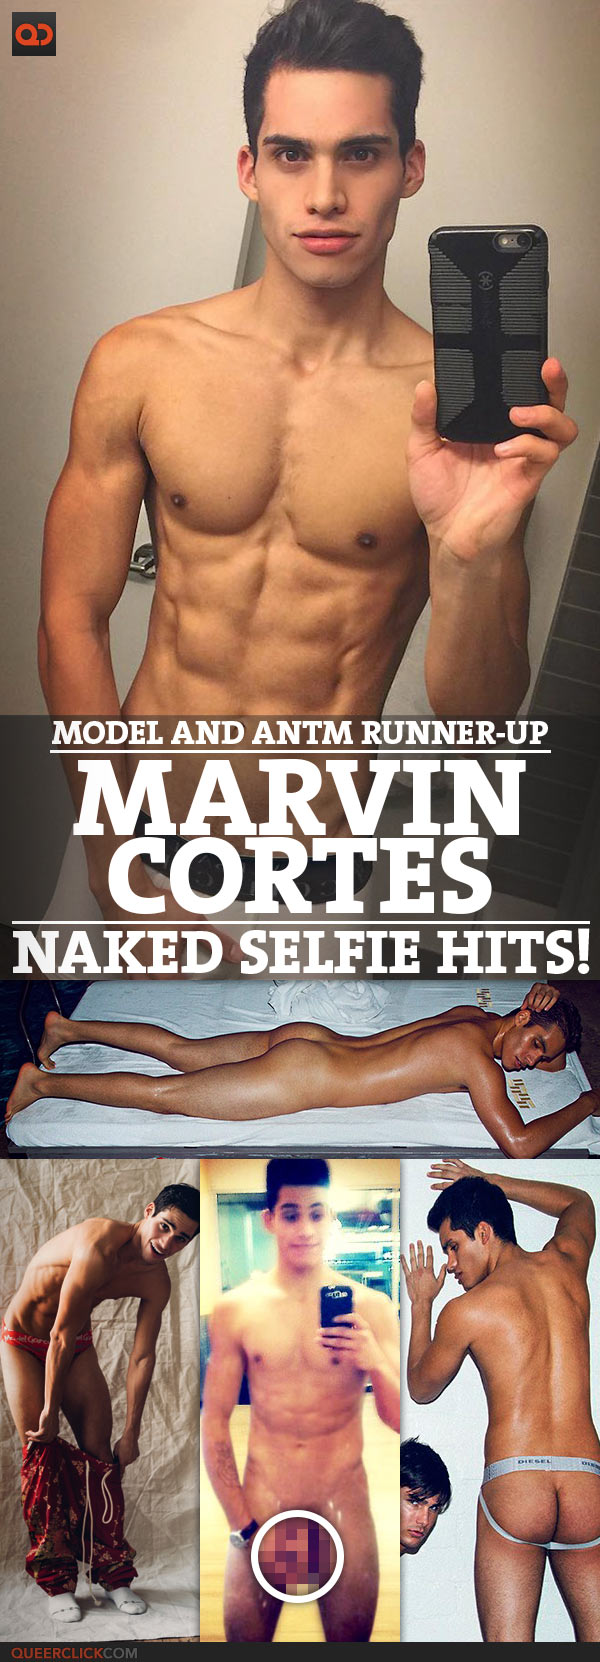 Marvin Cortes, Model And ANTM Runner-Up, Naked Selfie Hits!